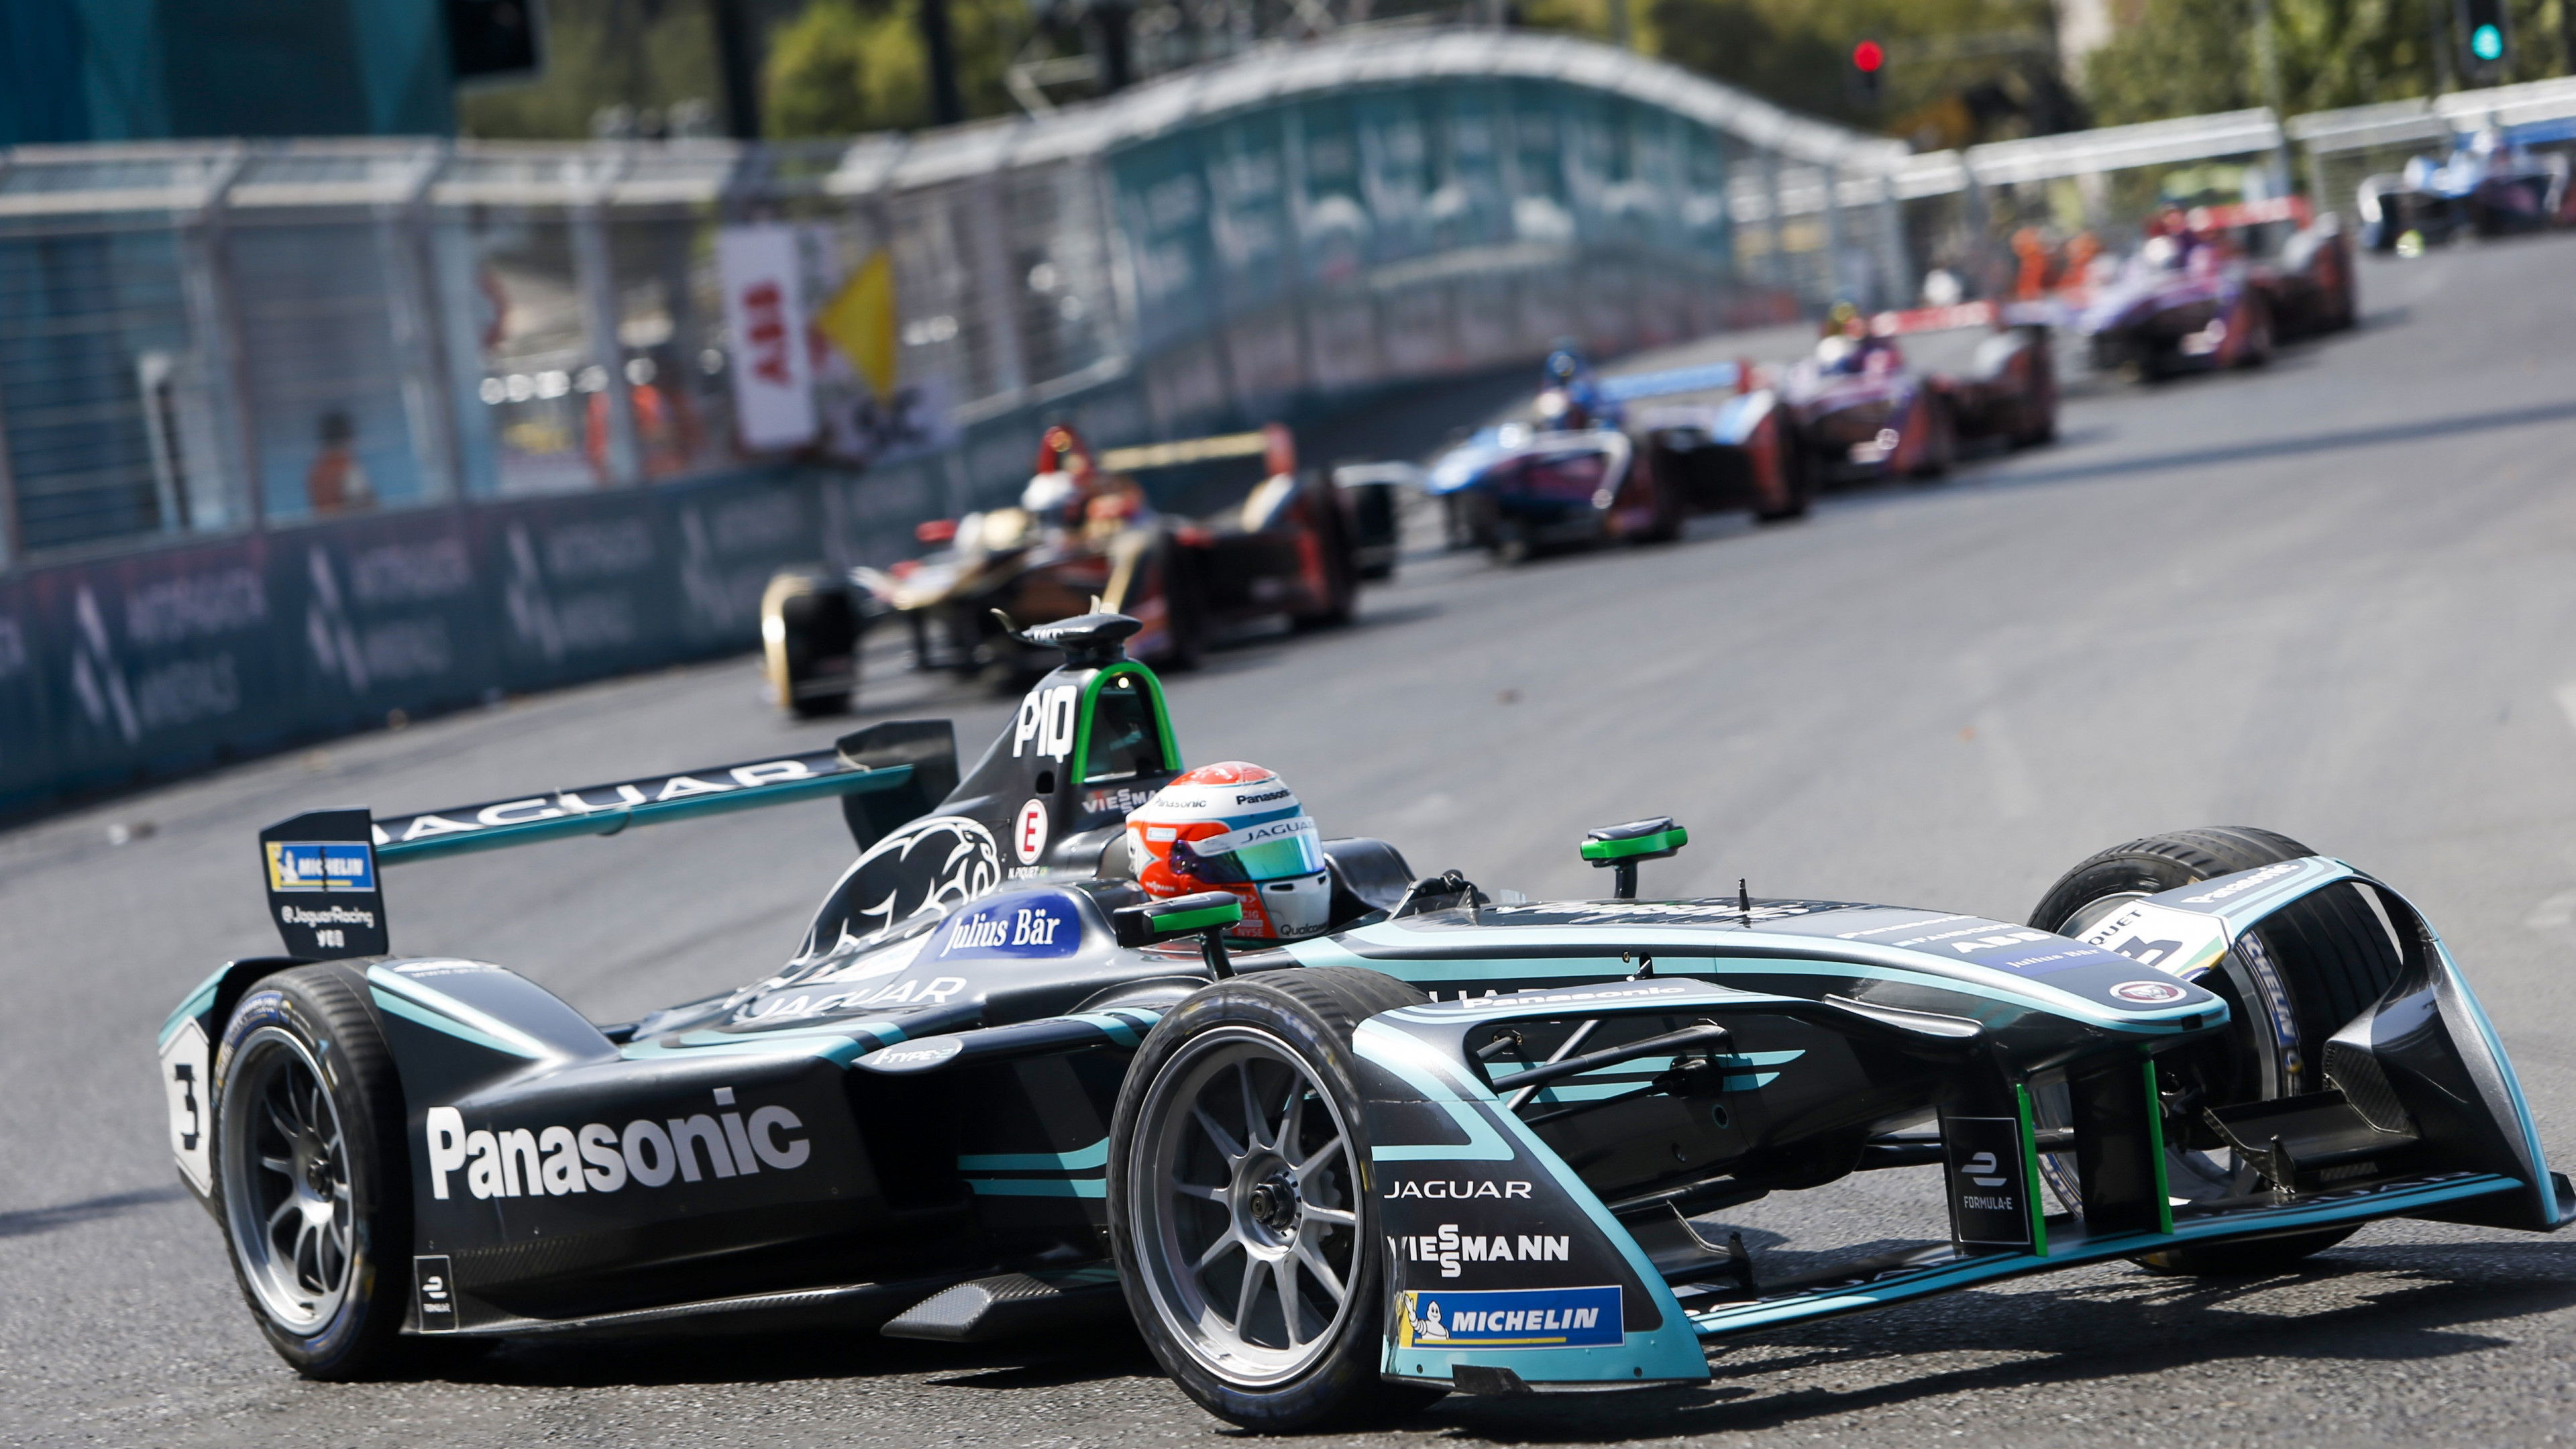 Panasonic Jaguar Racing | 3840x2160 wallpaper